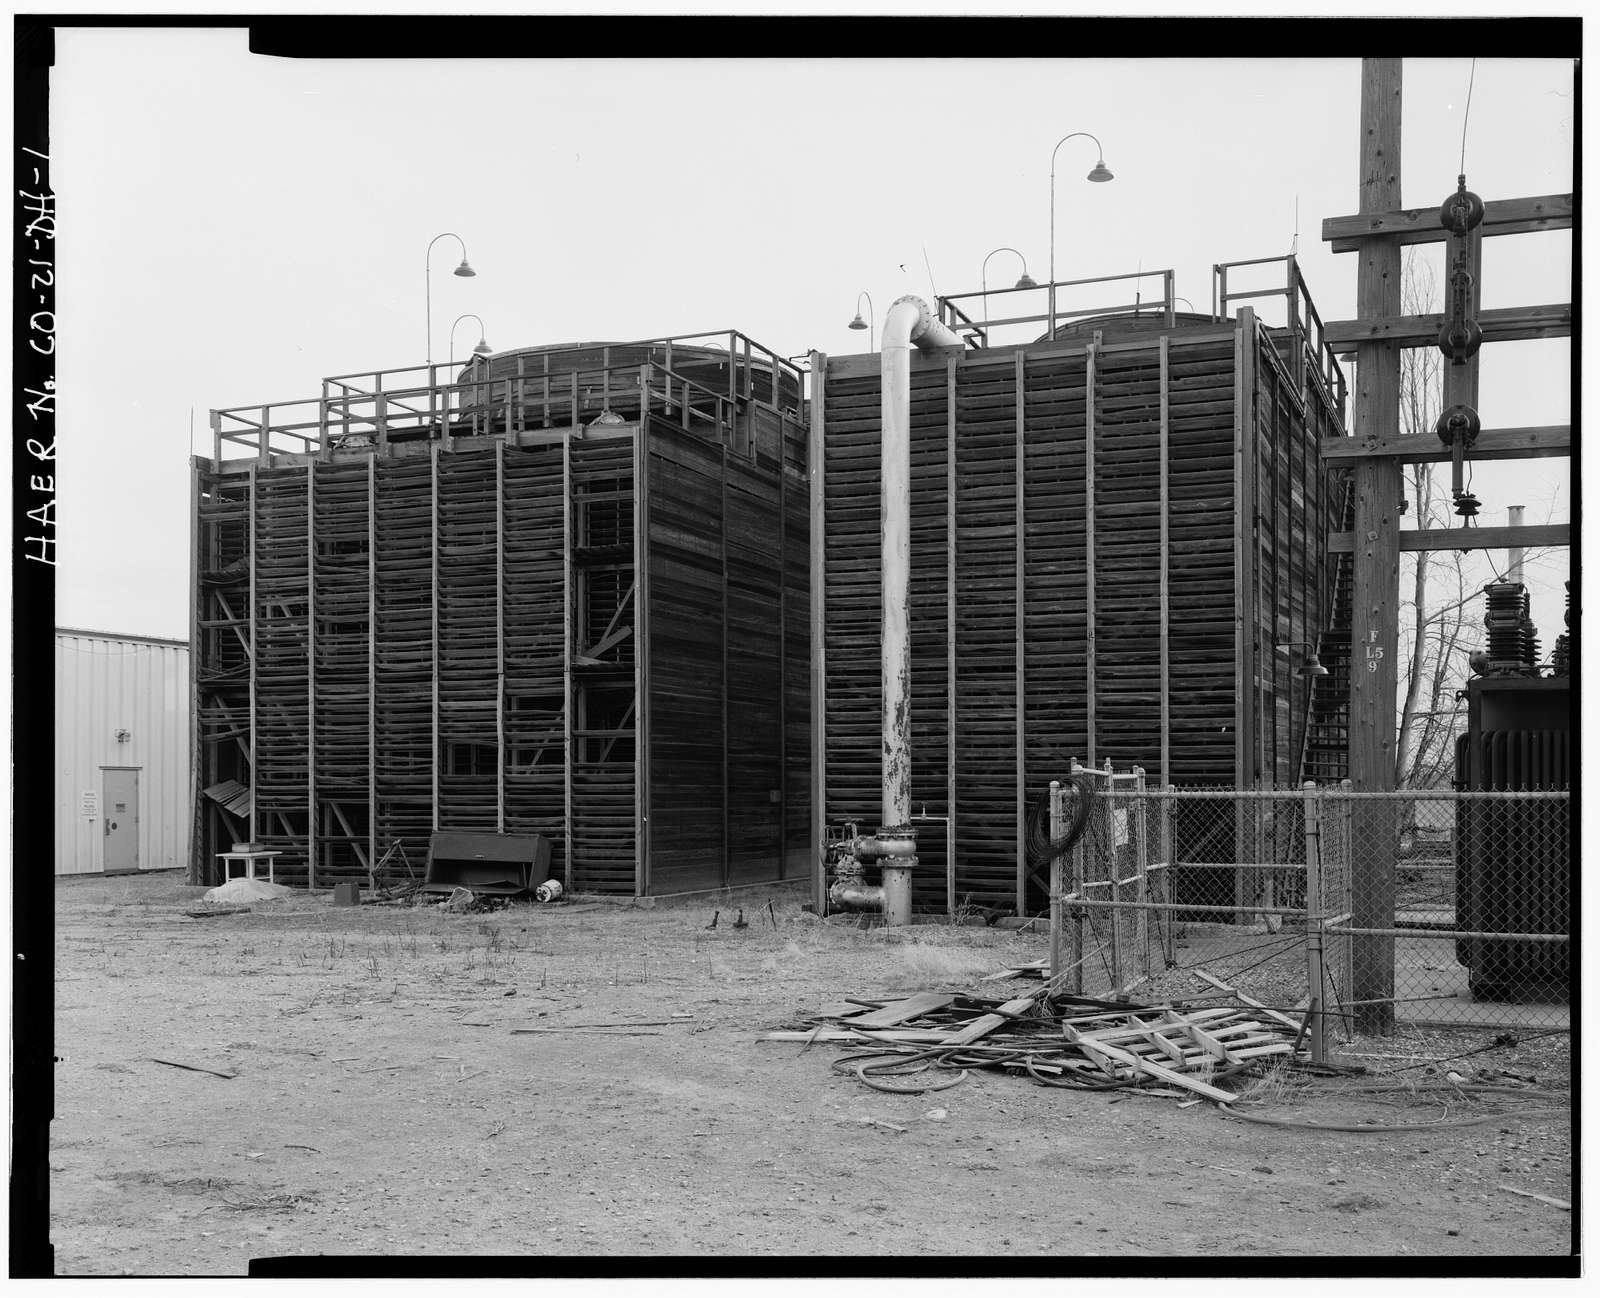 Rocky Mountain Arsenal, Cooling Tower, 3500 feet South of Ninth Avenue; 470 feet East of Road Northwest-4, Commerce City, Adams County, CO